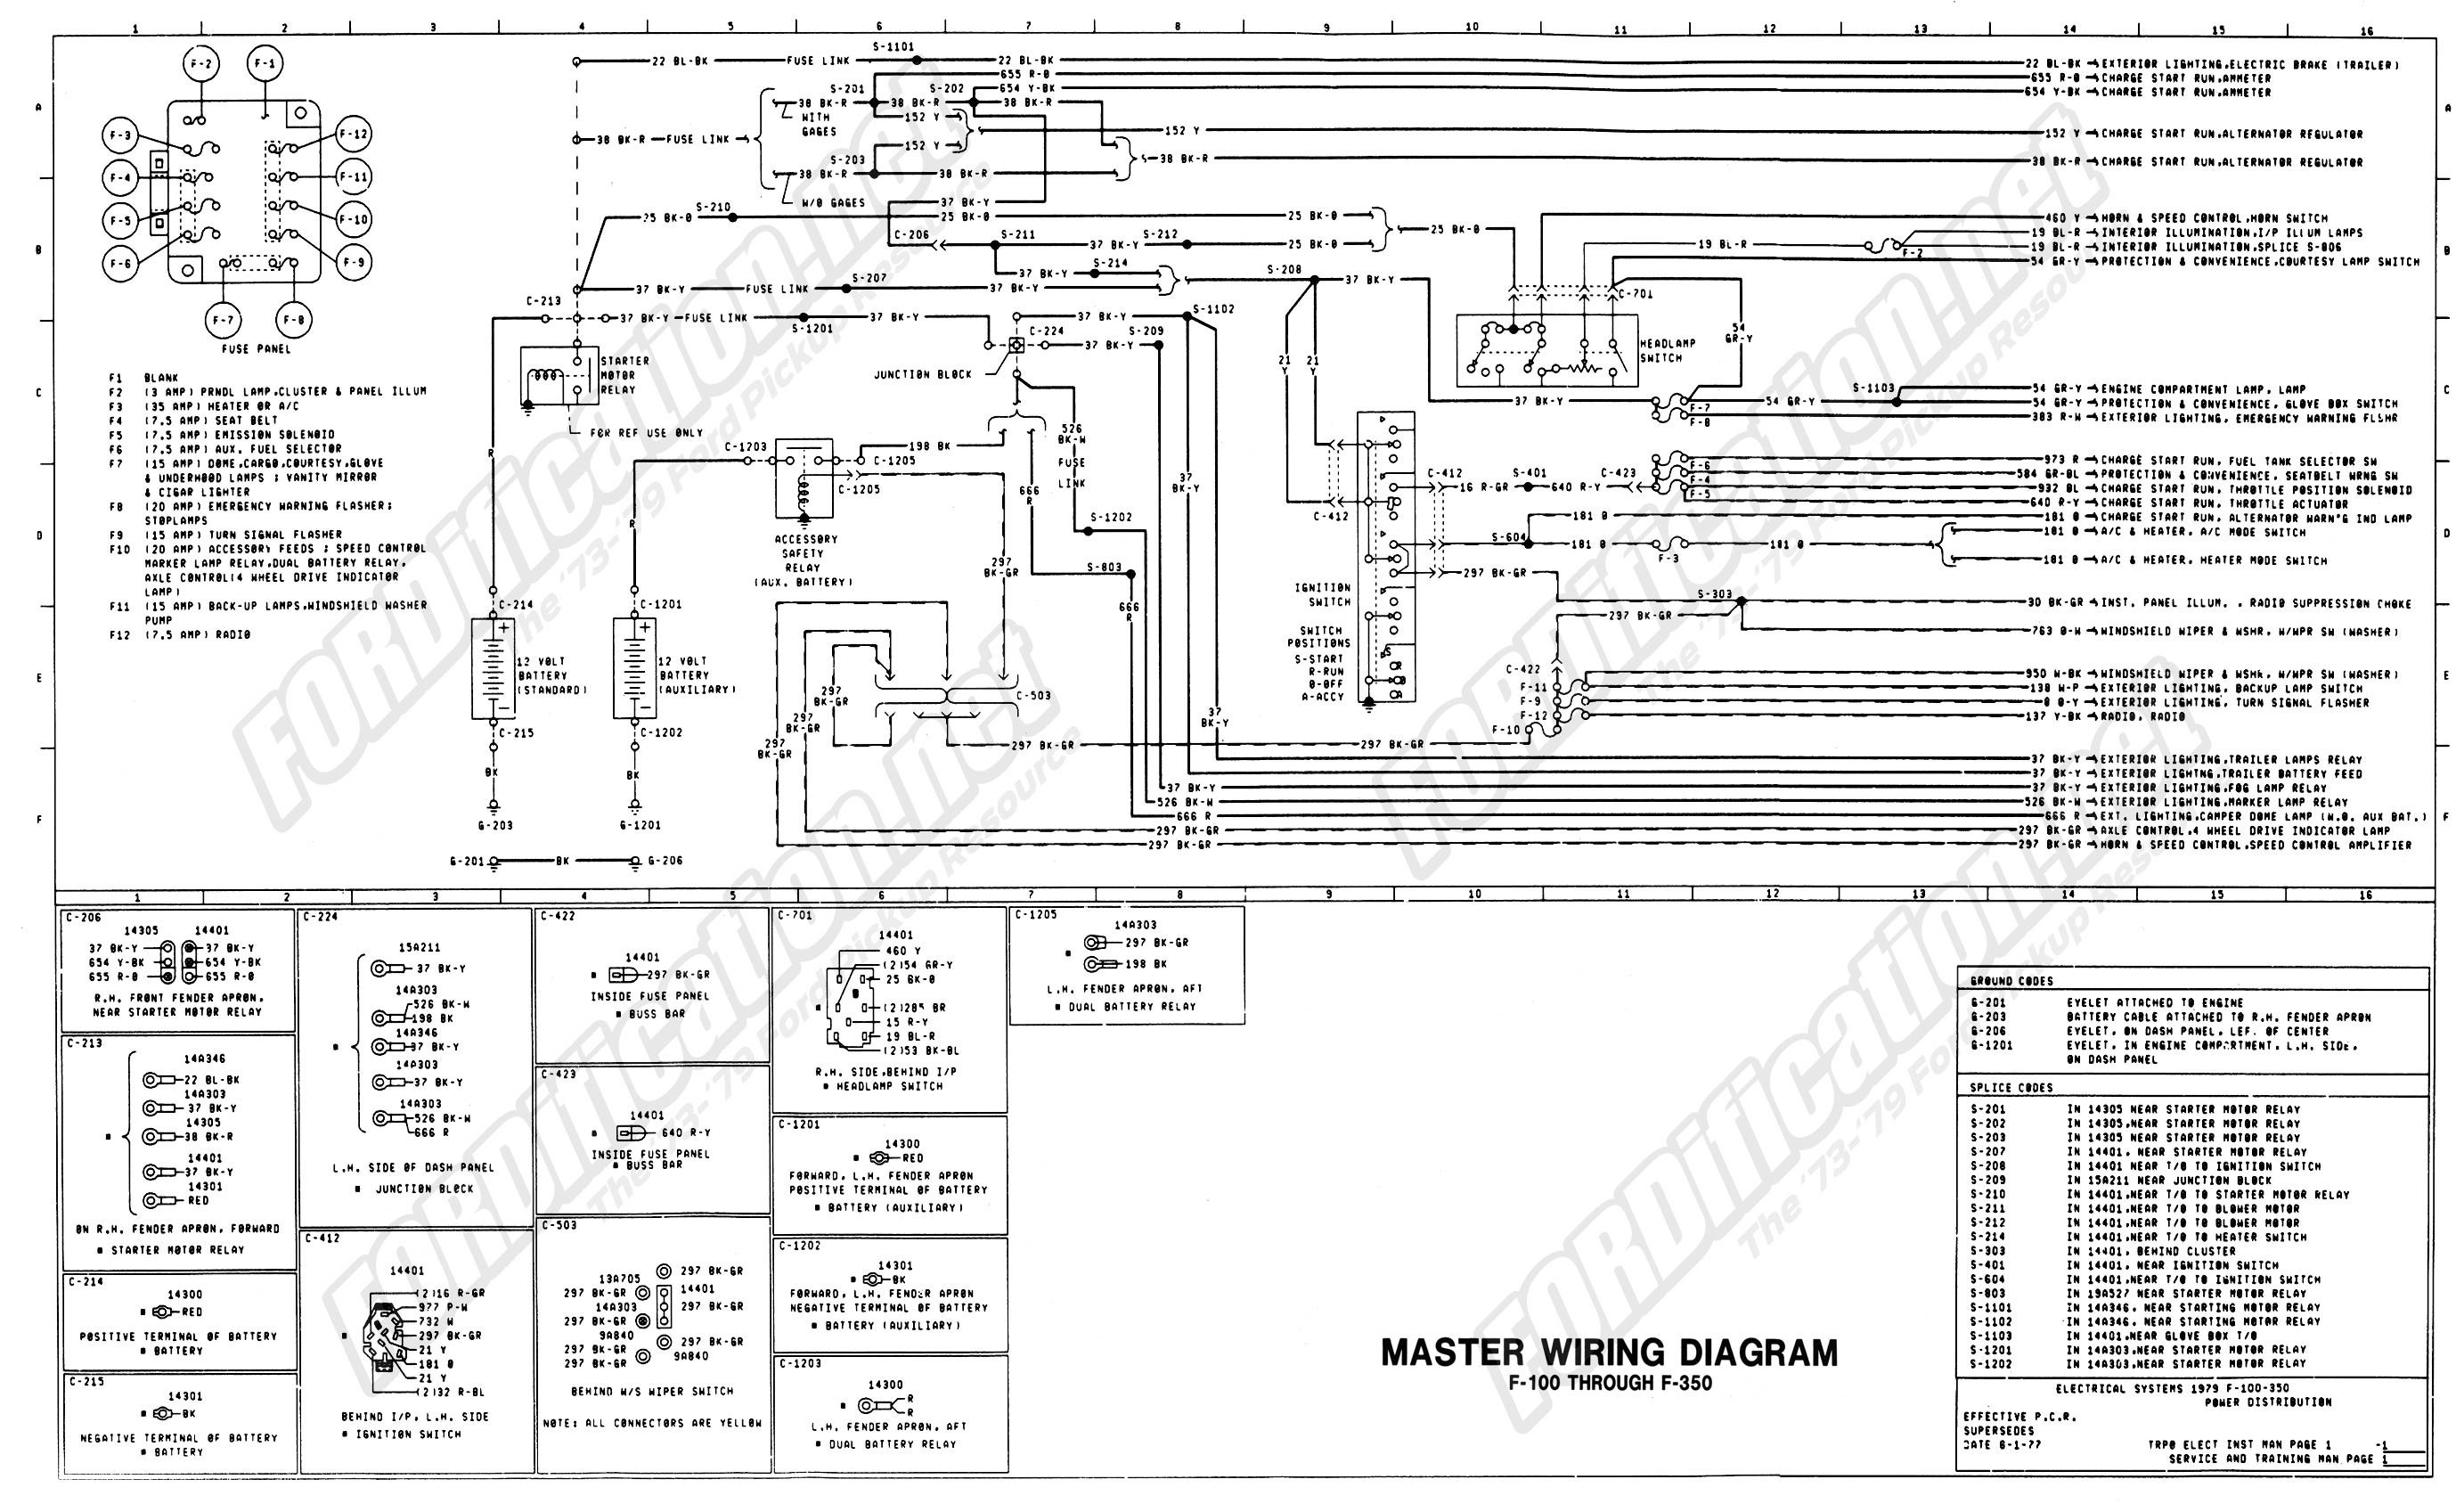 Mack Truck Fuse Box Diagram My Wiring Diagram 2005 Ford F-150 Fuse Box  Diagram 1969 Ford Fuse Box Diagram